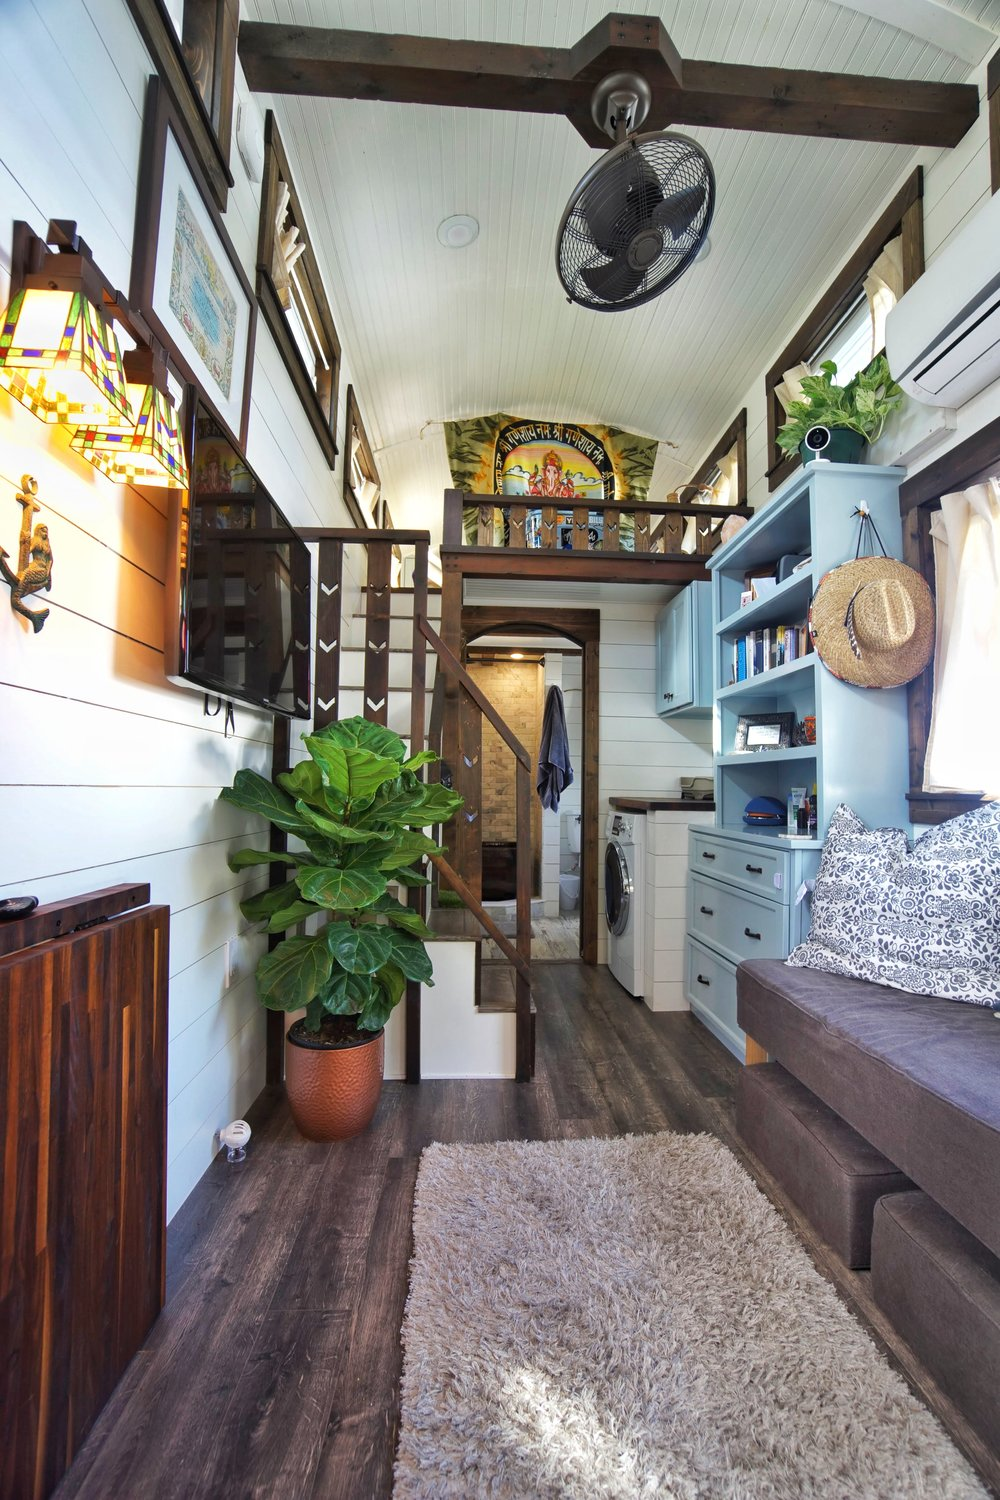 Tiny House tiny living fiddle leaf fig tree never stop exploring lg tiny house on wheels small living fan fantastic nest wall sconces washer dryer combo lg tv straw hat